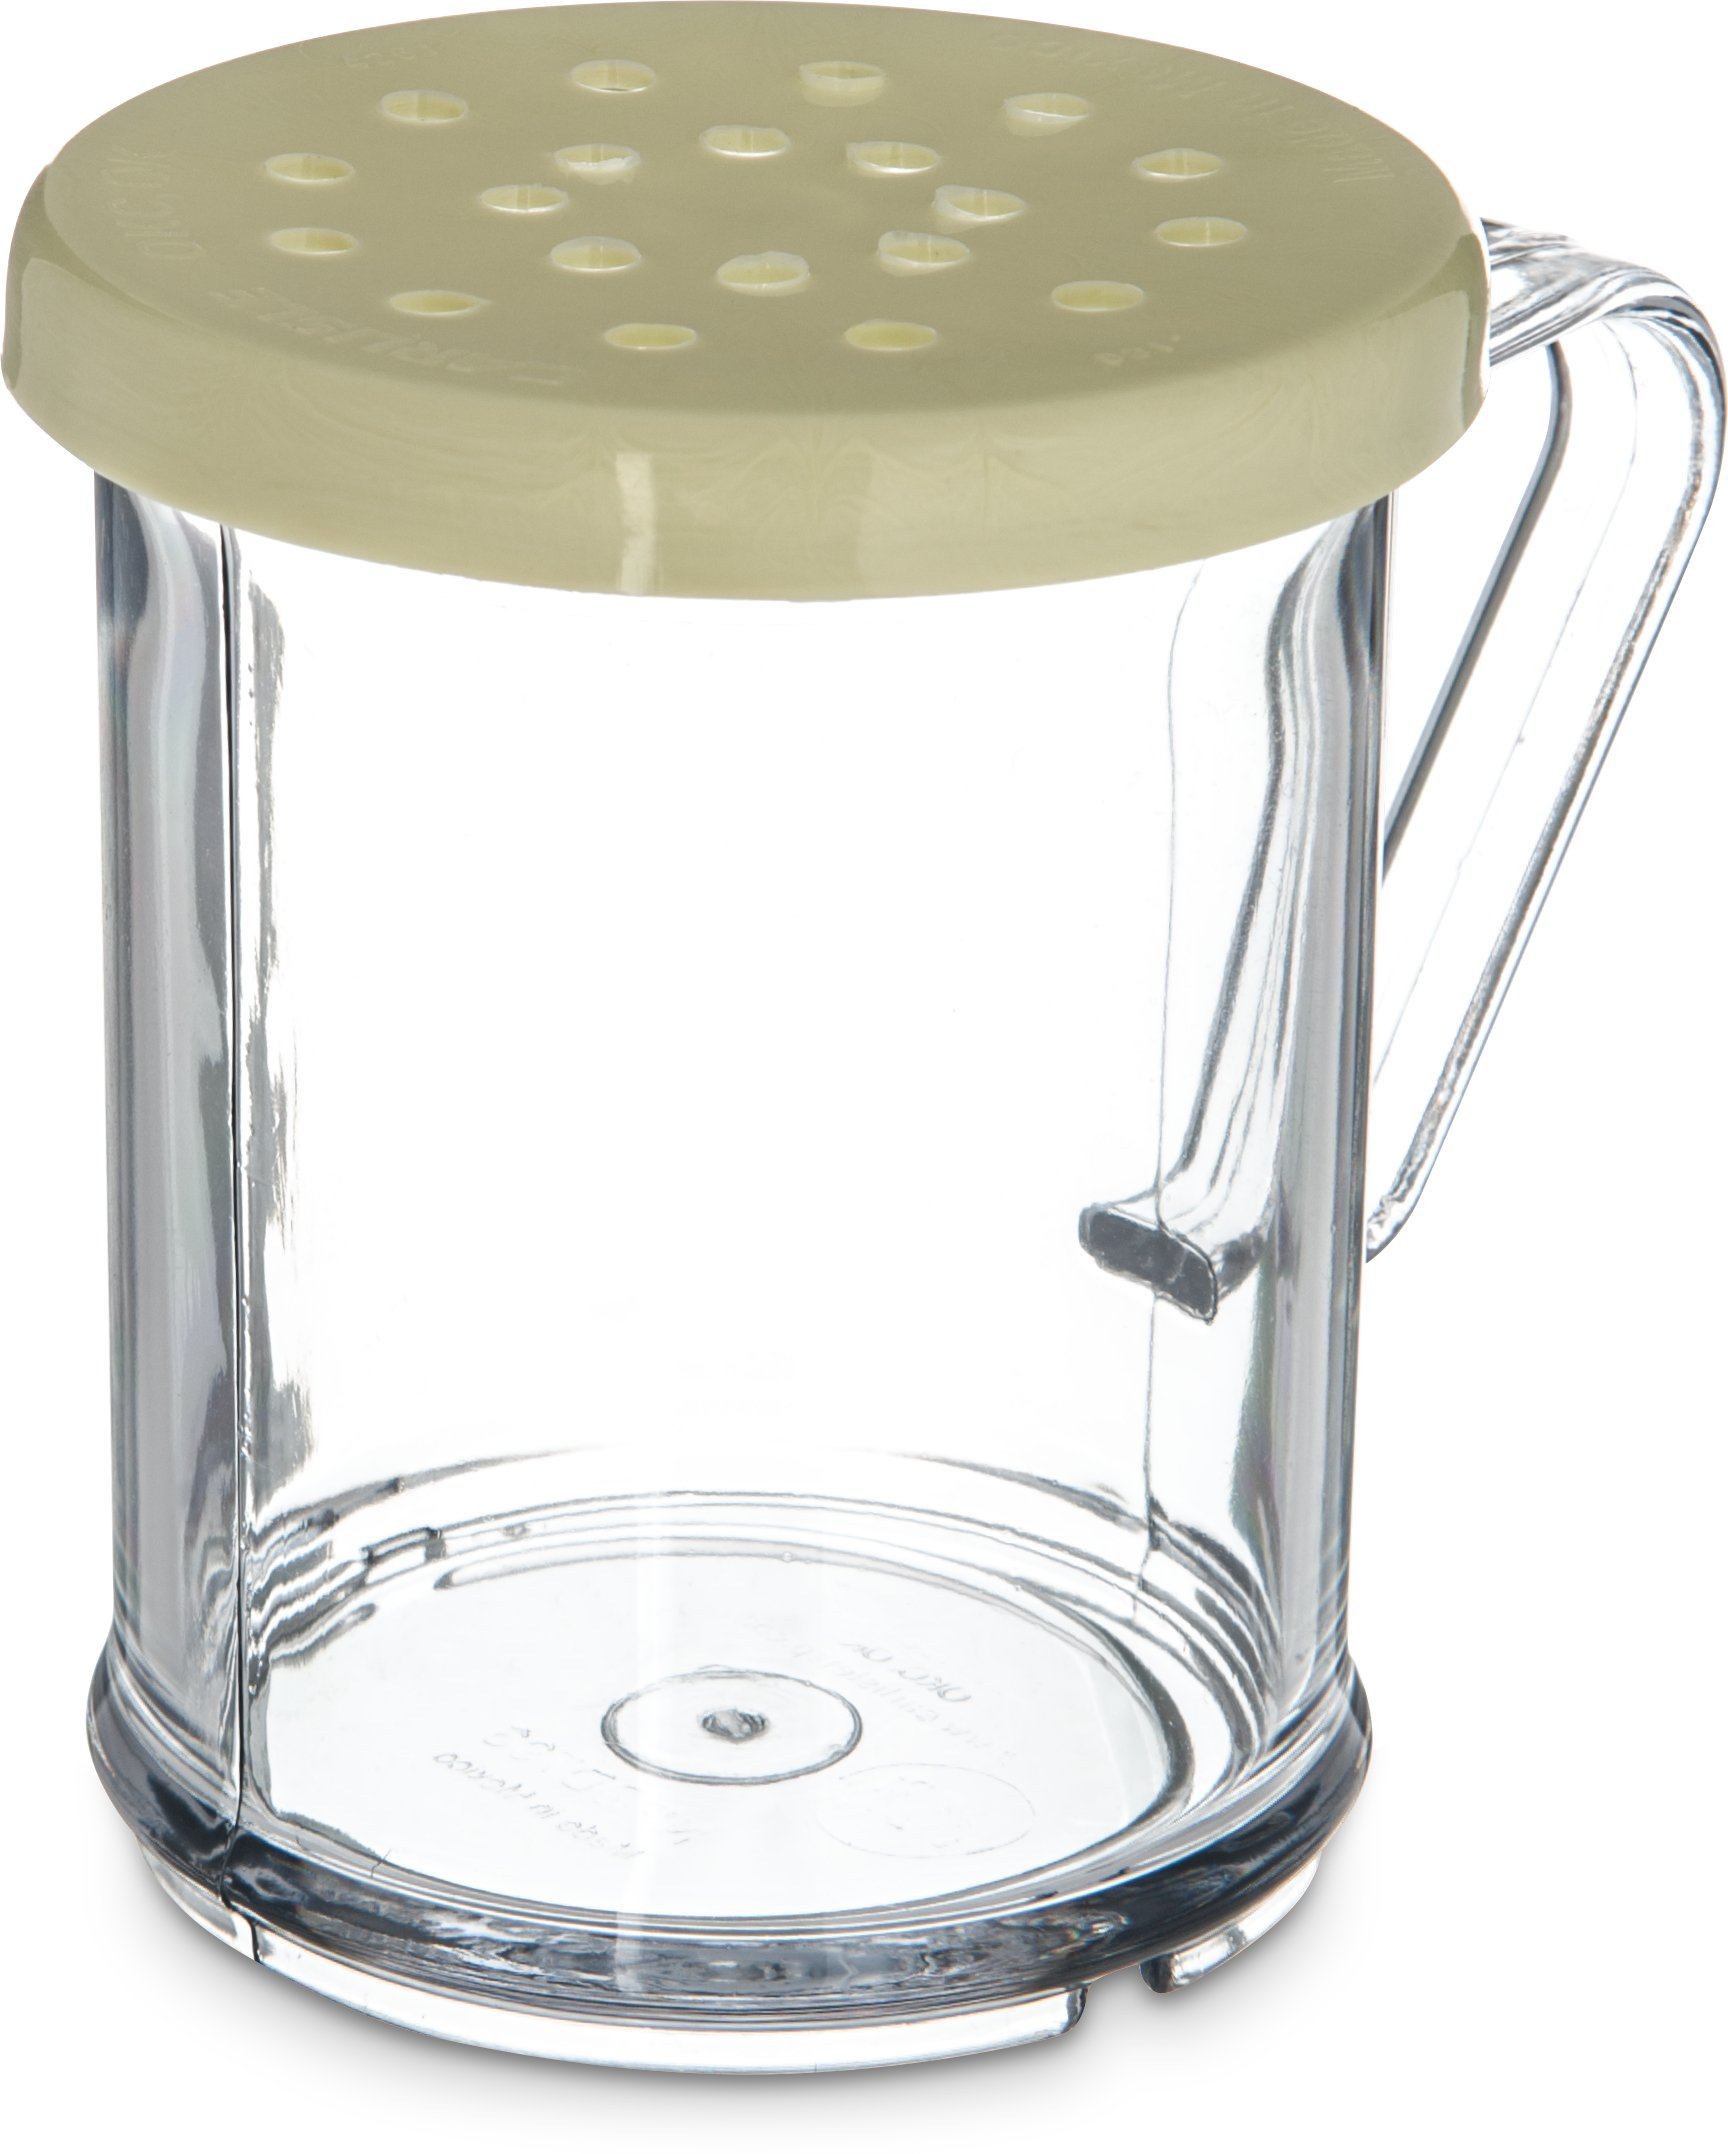 Carlisle 426004 Polycarbonate Cheese Shaker/Dredge with Lid, 1 Cup Capacity, Yellow (Pack of 12) by Carlisle (Image #1)